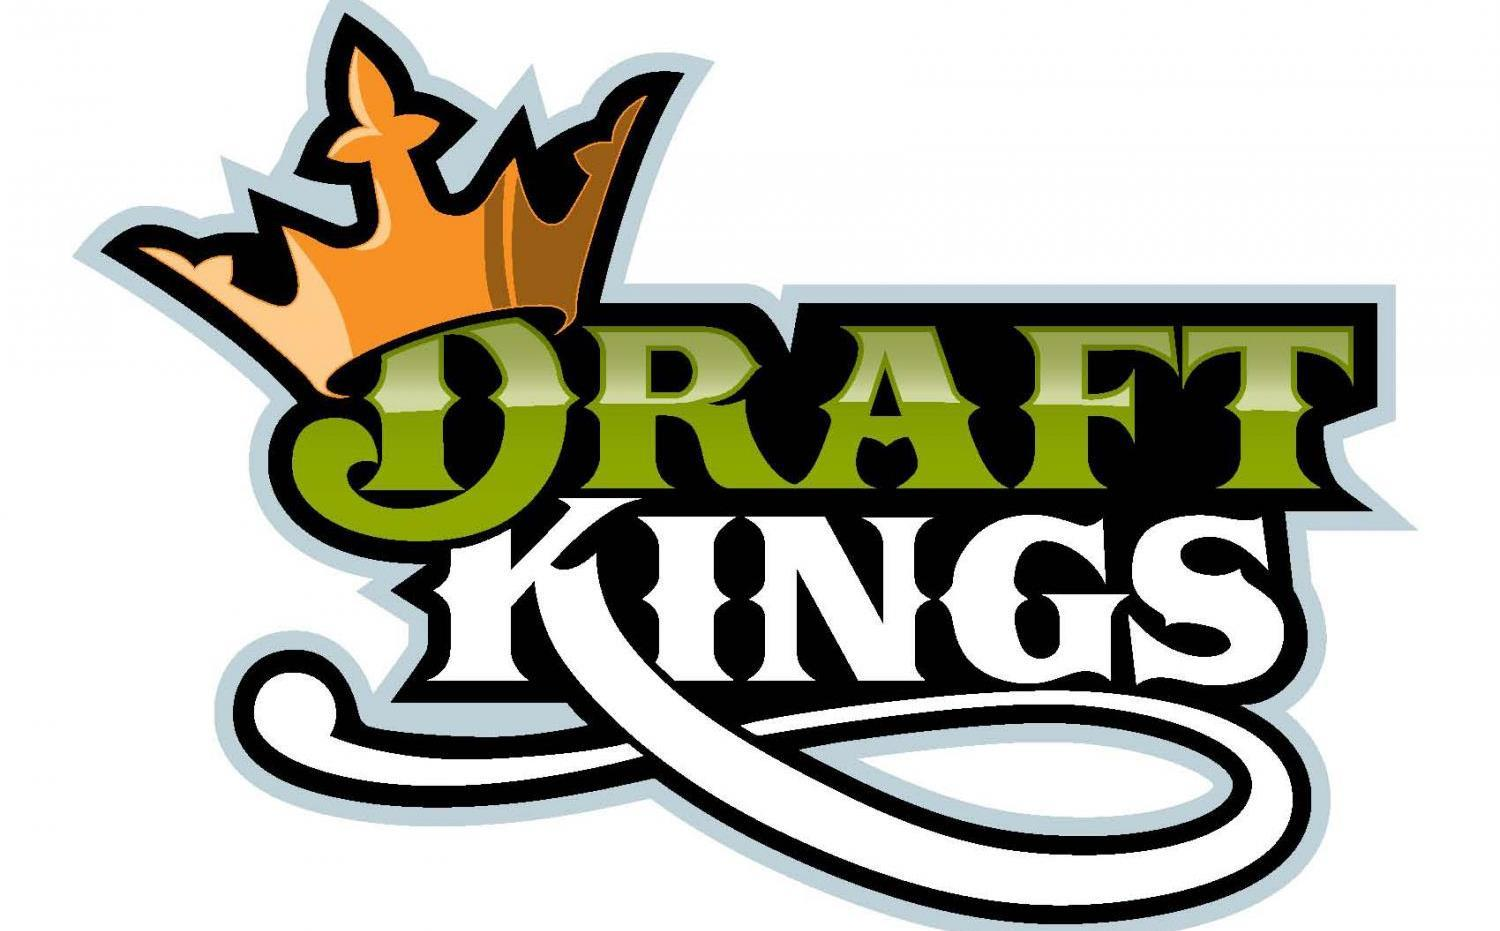 DraftKings sportsbook has officially launched in New Jersey New players that follow our link get up to 200 on a free online sports betting bonus bet